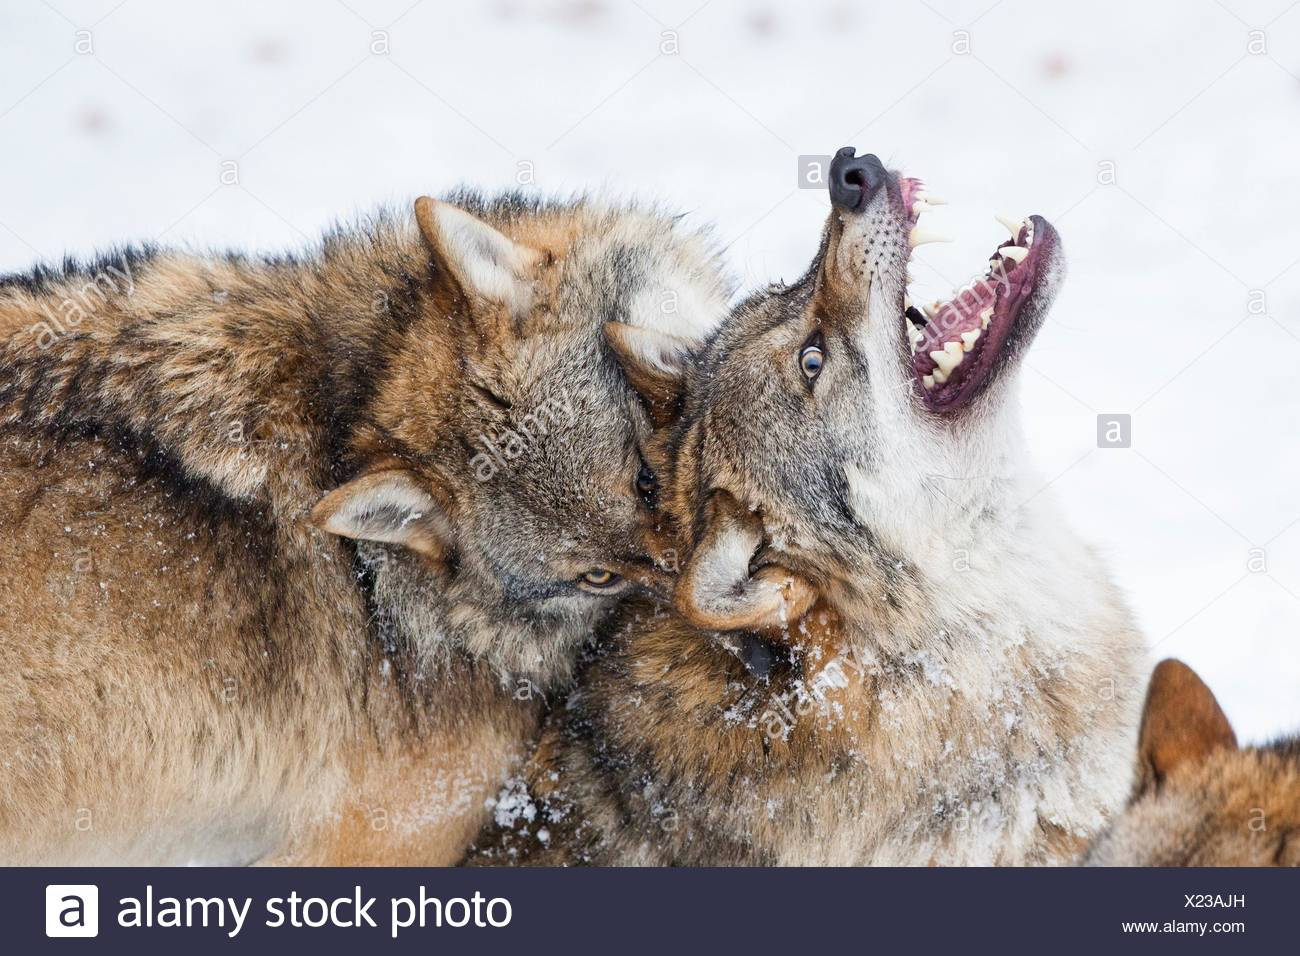 Two wolves (Canis lupus) fighting, Bavarian Forest National Park, Germany. - Stock Image